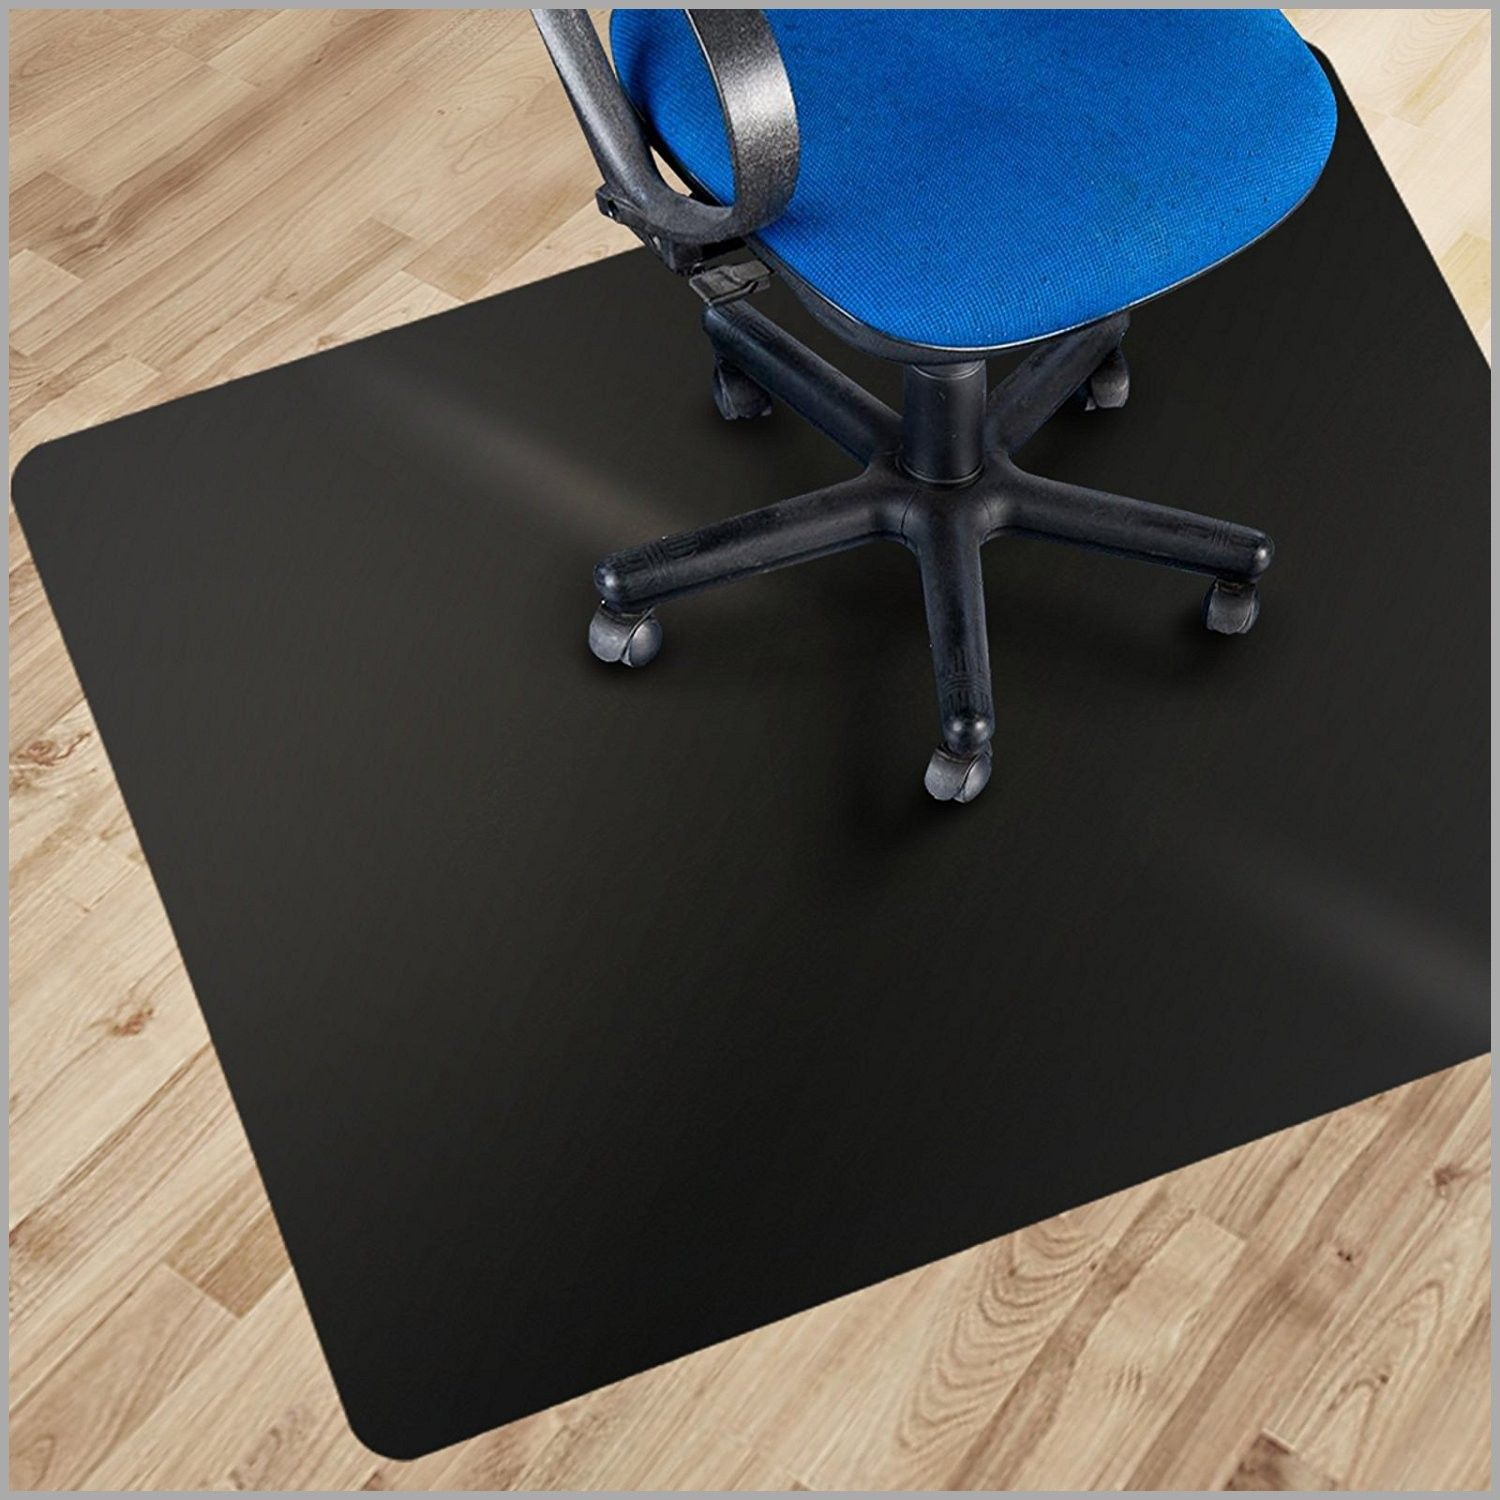 20 Plastic Office Chair Mat Ashley Furniture Home Office Check